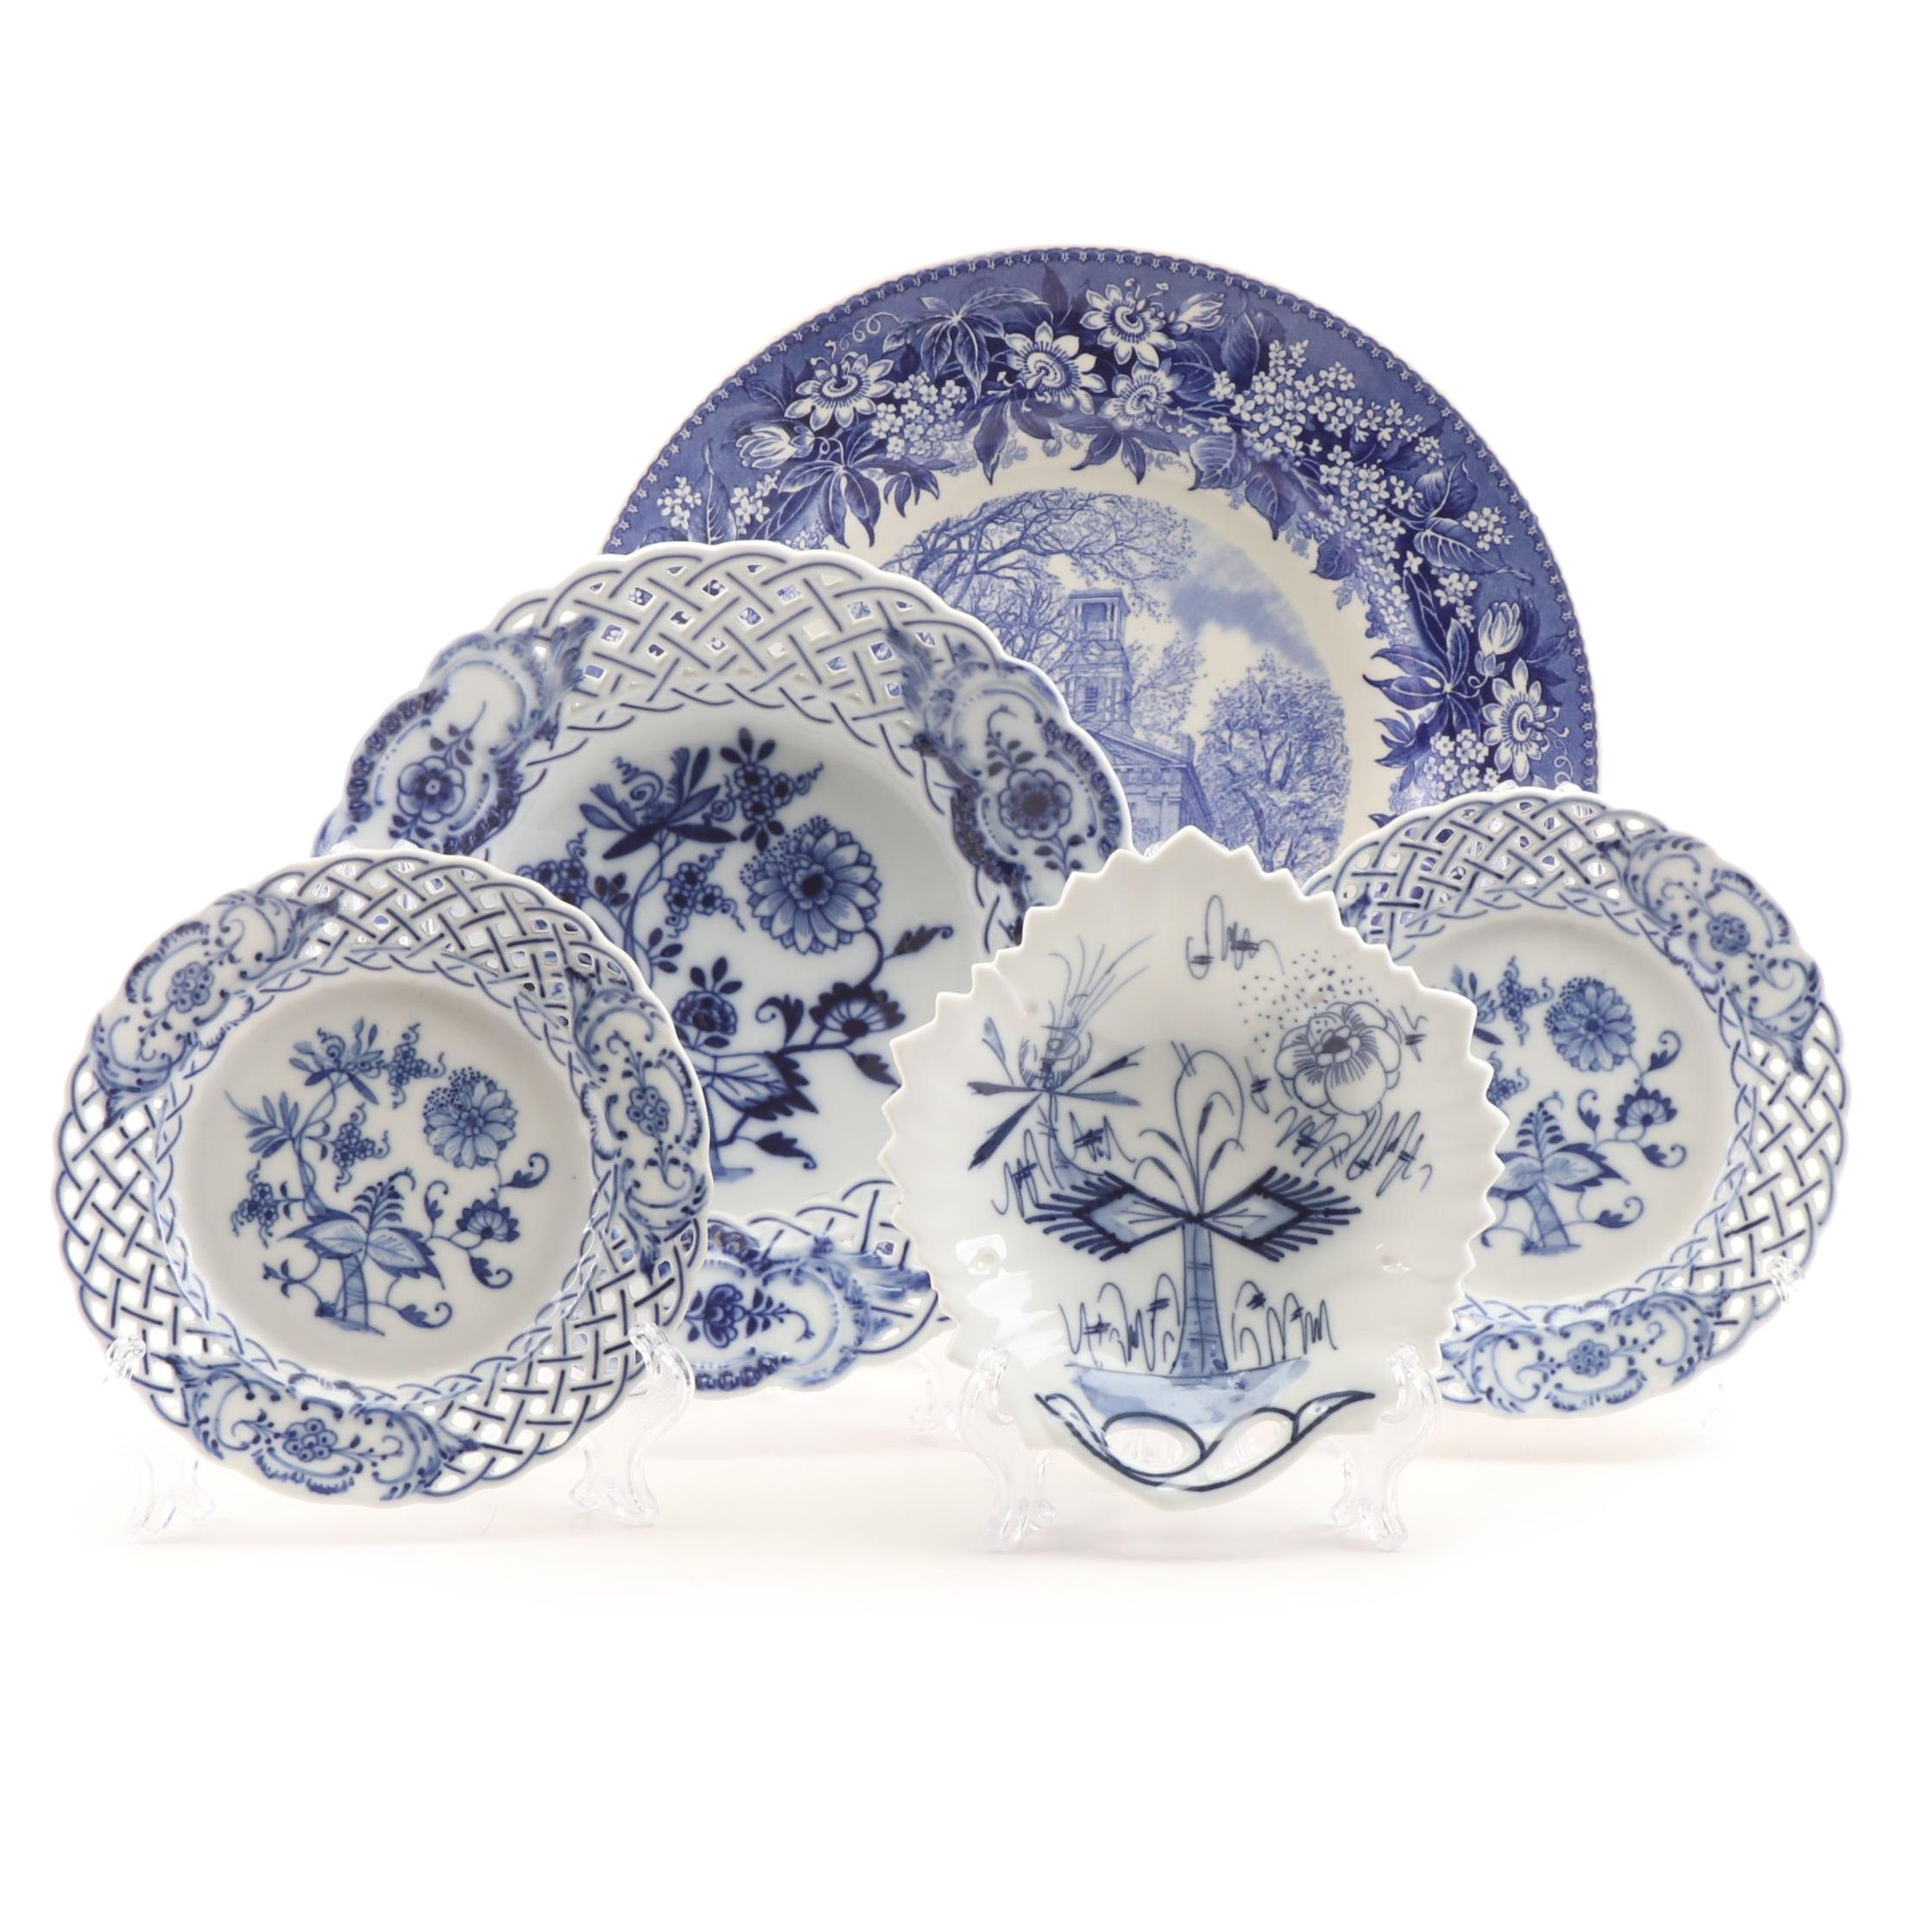 Blue and White Porcelain and Ceramic Tableware including Meissen and Wedgwood